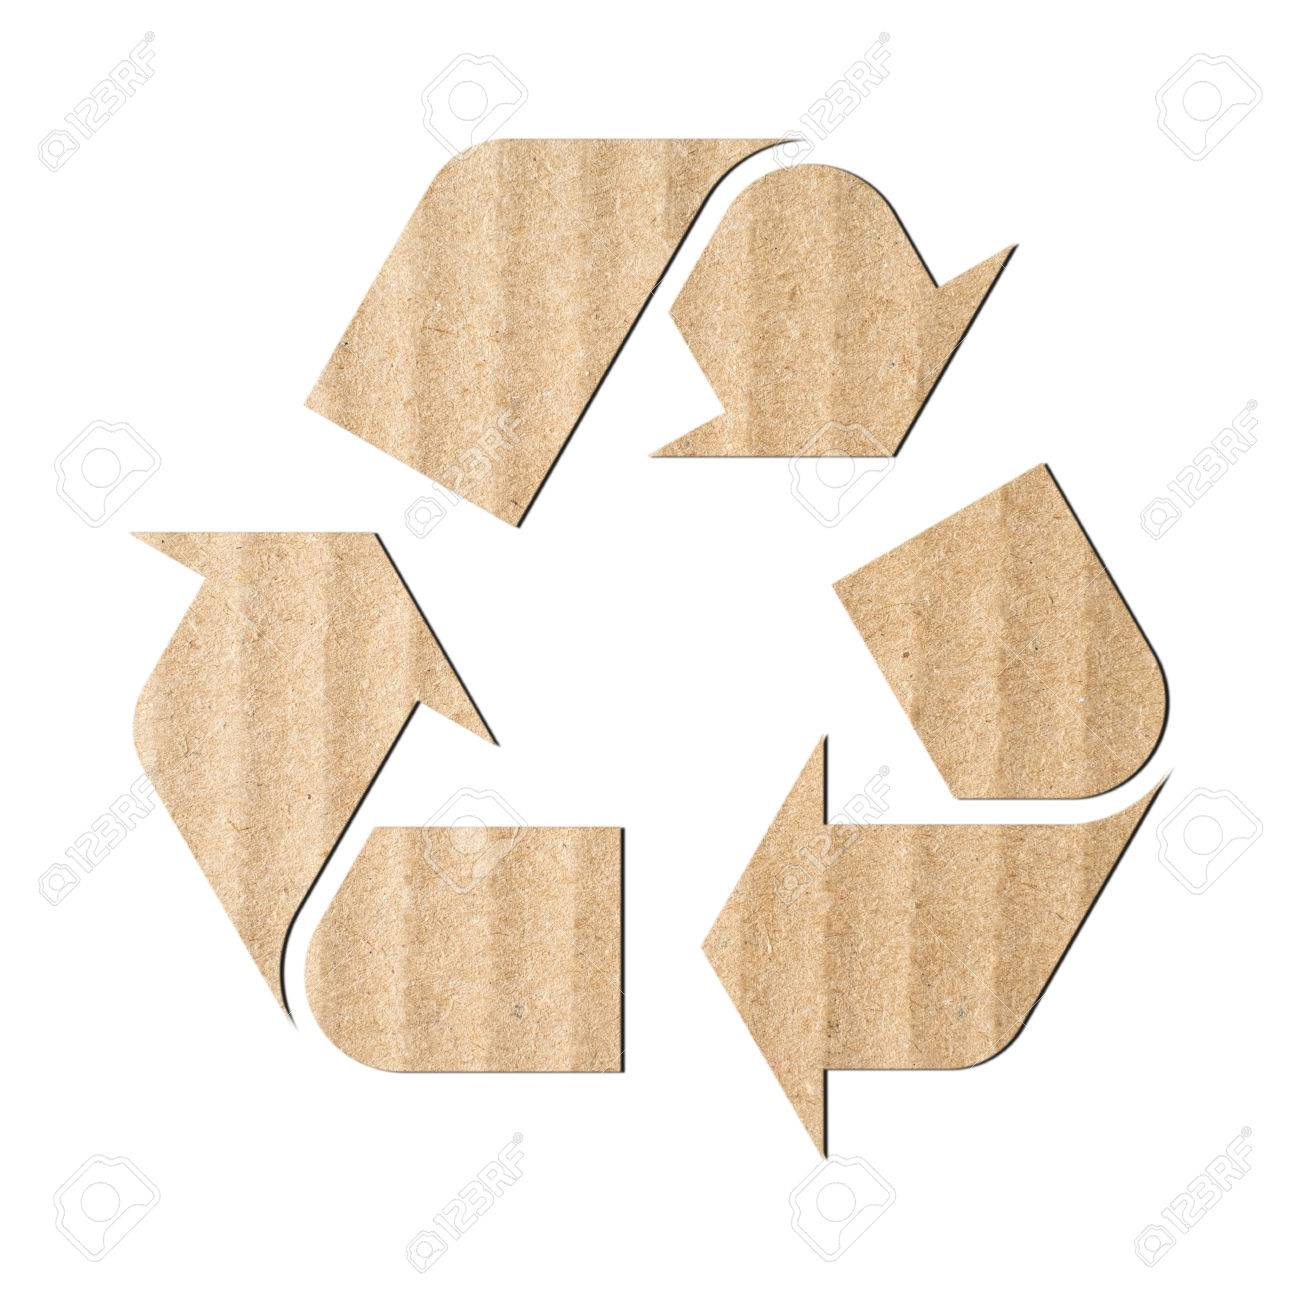 Recycling symbol made of corrugated cardboard stock photo picture recycling symbol made of corrugated cardboard stock photo 65751442 biocorpaavc Gallery